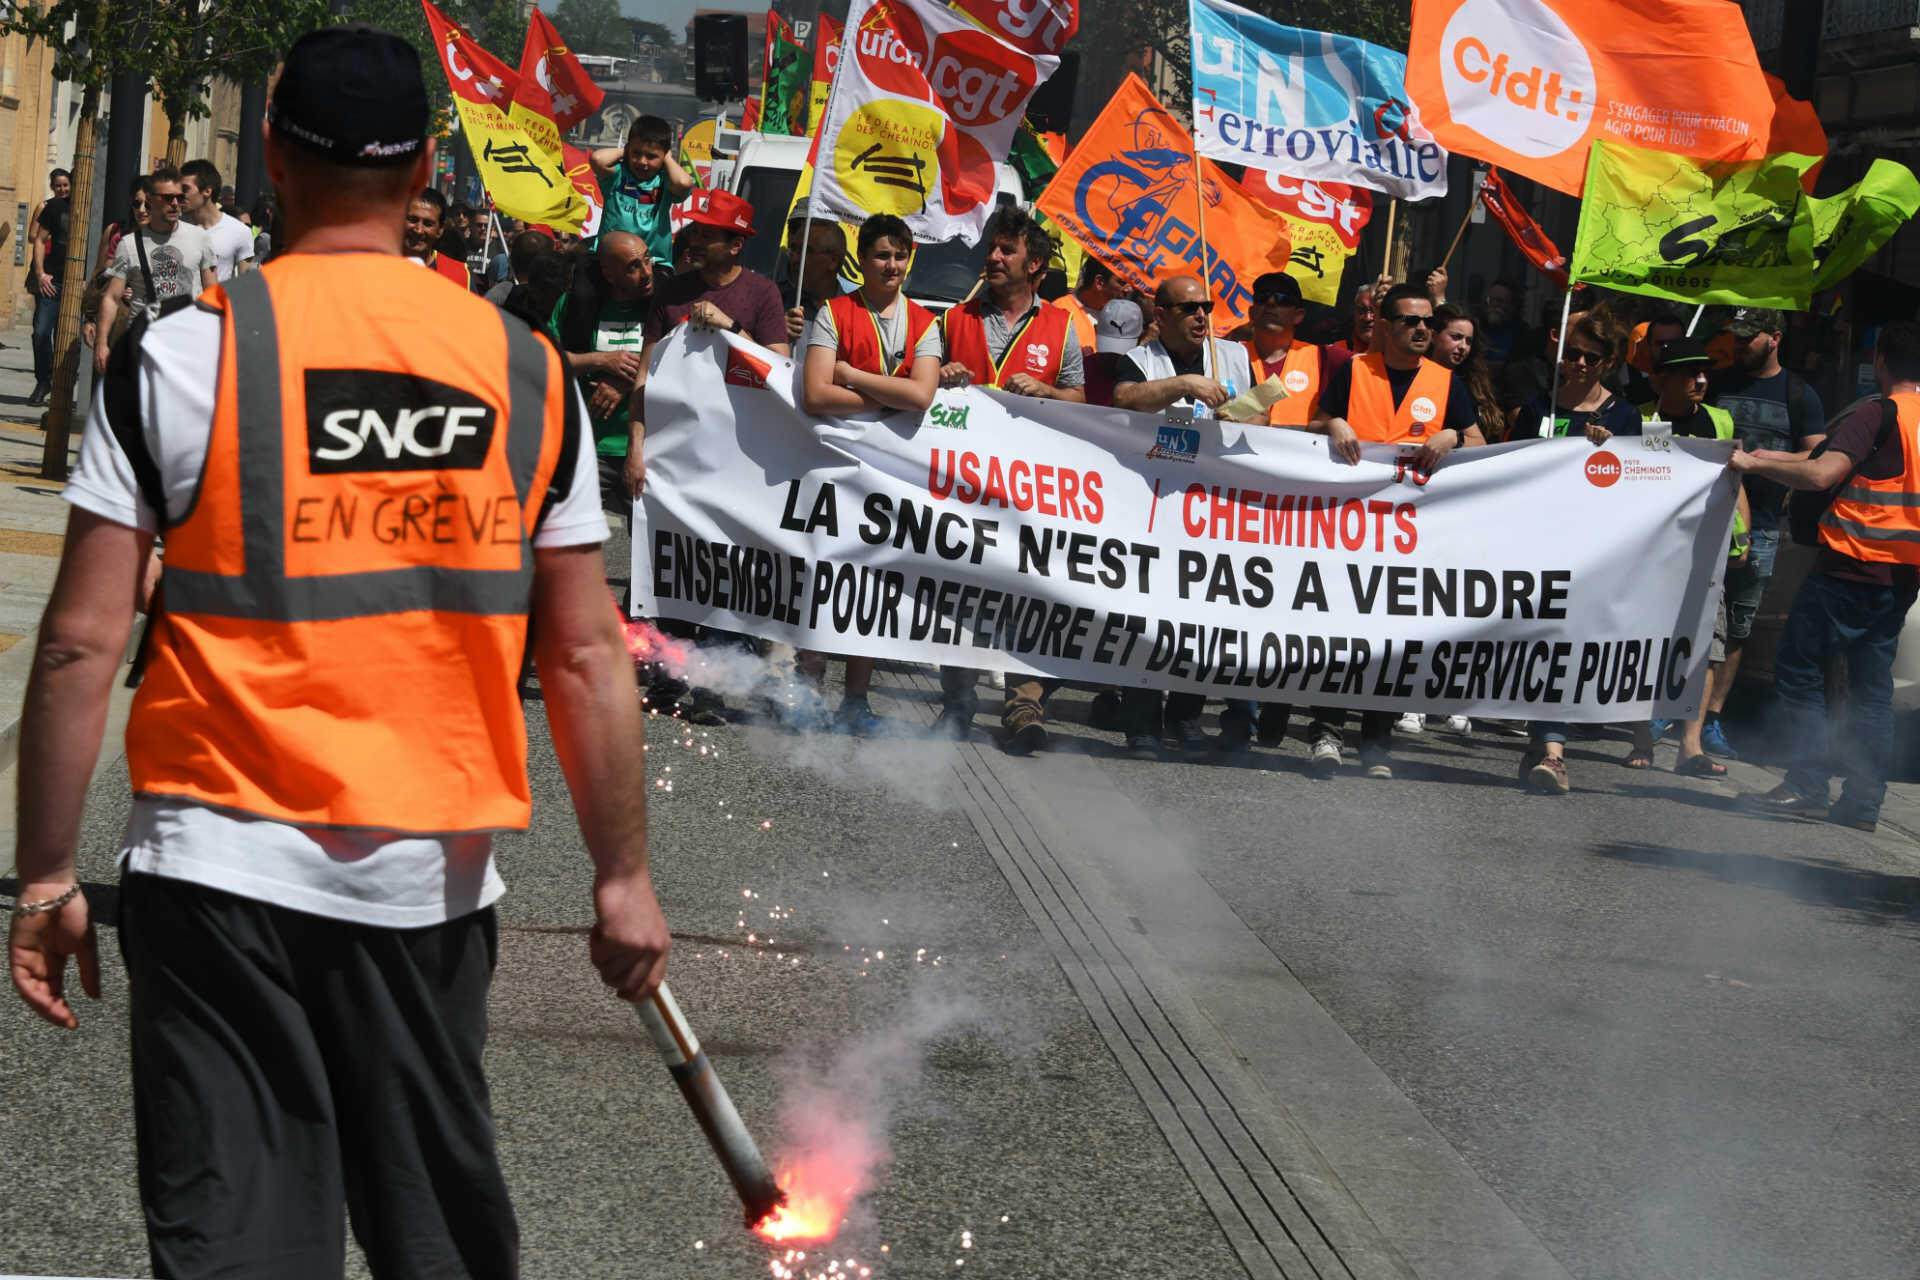 The government's much-anticipated reforms of the state railroad company SNCF brought thousands to the streets in March for a series of strikes lasting until the summer. Despite the demonstrations, Macron stayed the course; the reforms were adopted in June. The new law, which will phase out SNCF's generous benefits and pensions for future employees, were meant to force the company to cut costs and modernise before the EU opens up domestic rail contracts to competitive bidding.